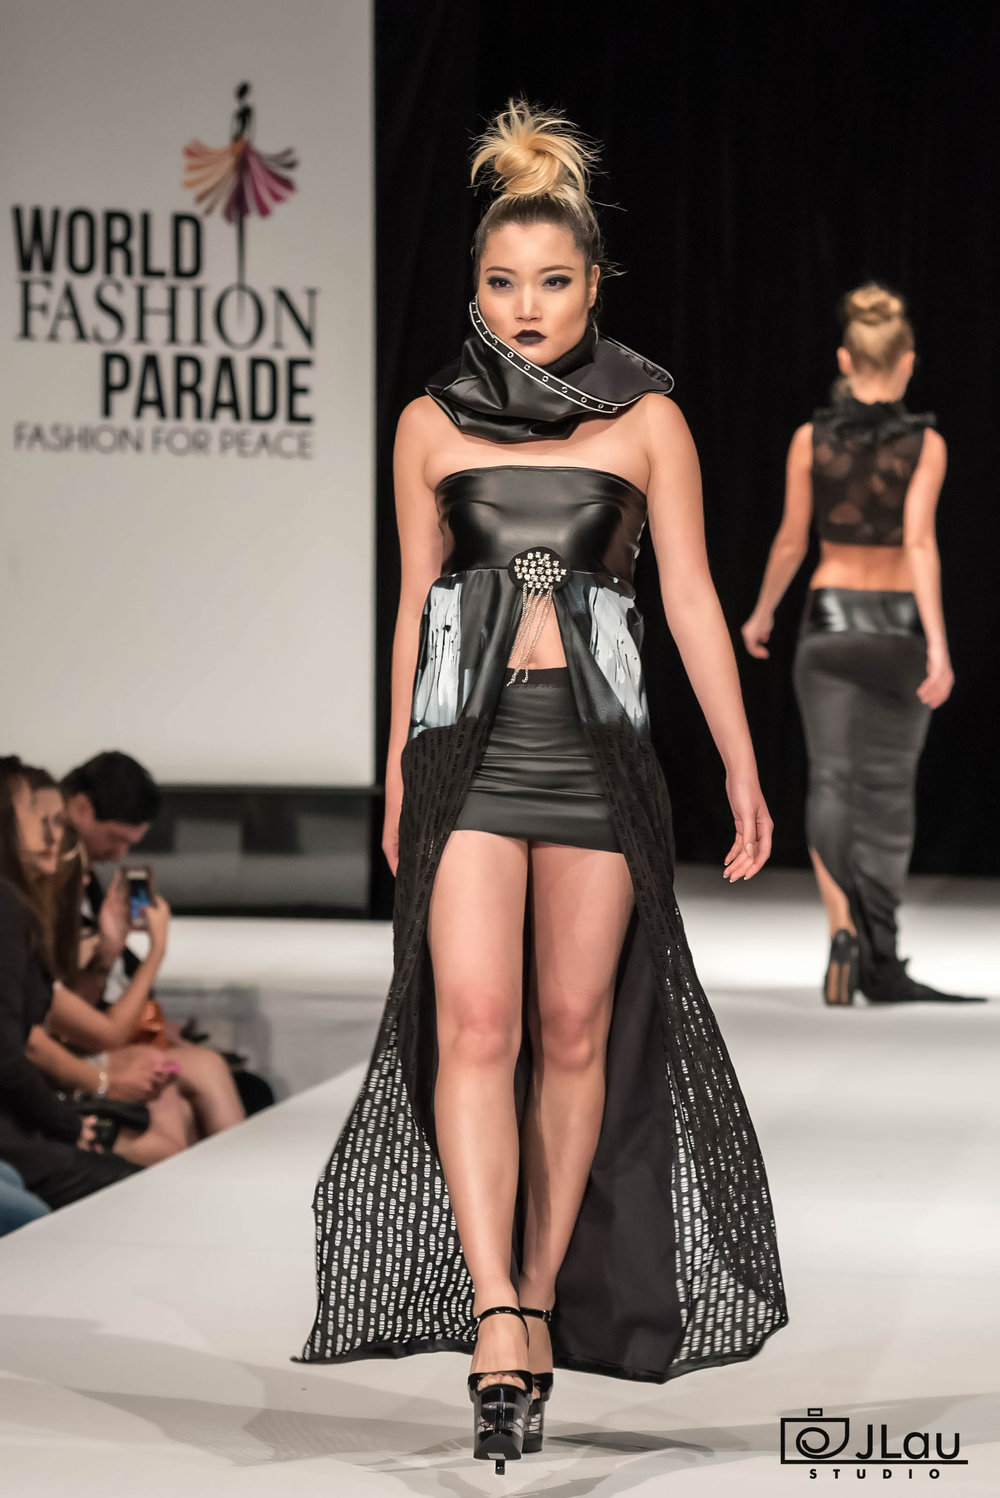 World Fashion Parade Designer: Grunge Beauty Couture